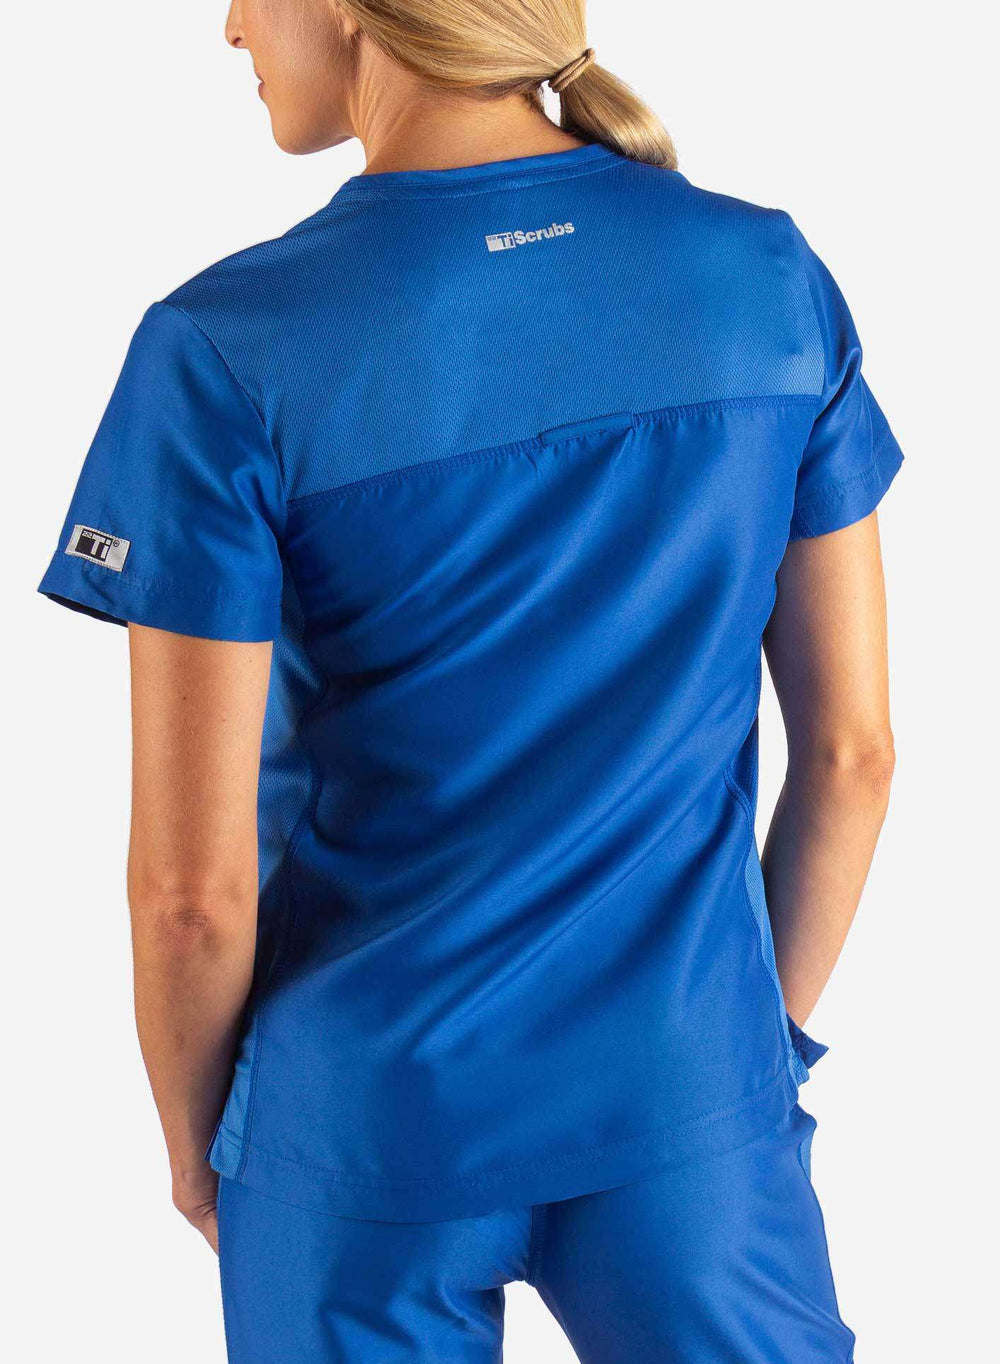 Women's Fitted Scrub Top in Royal Blue Back